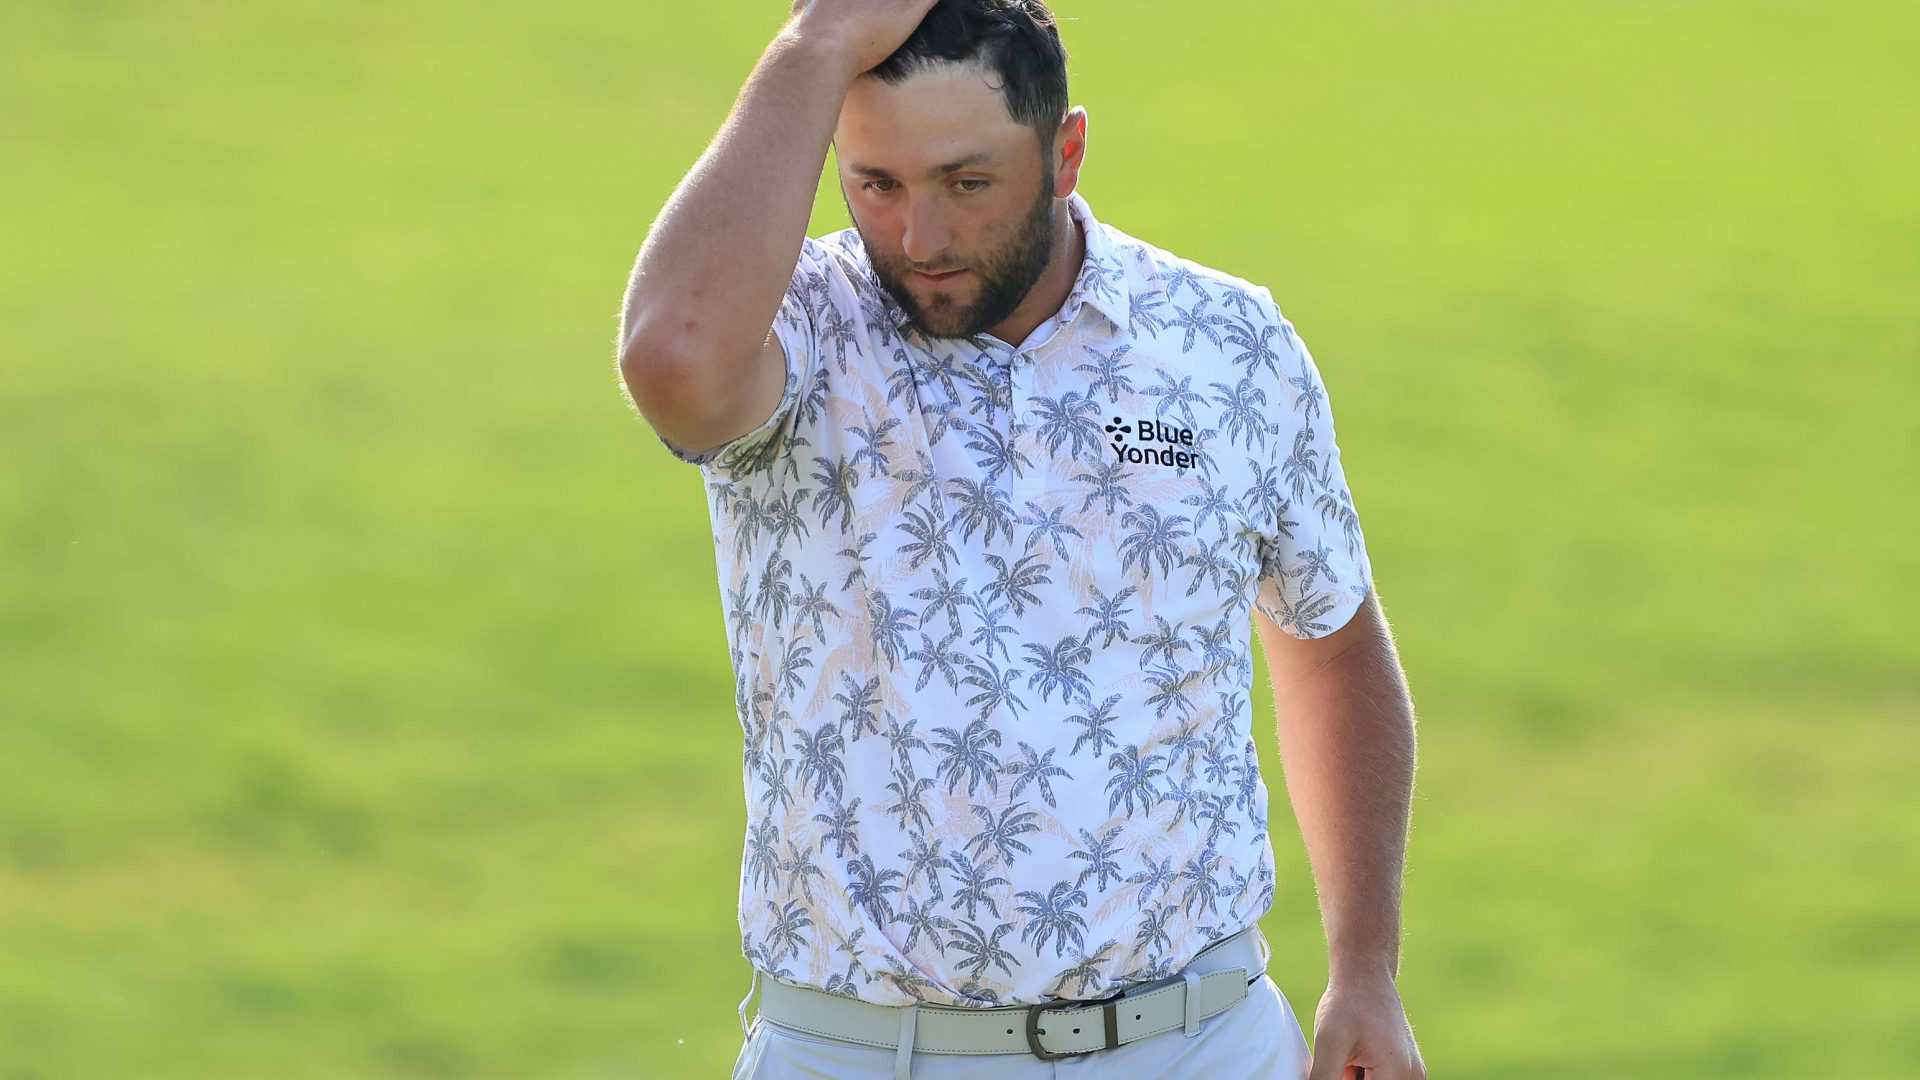 DUBLIN, OHIO - JUNE 05: Jon Rahm of Spain reacts as he walks off the 18th green after completing his third round of The Memorial Tournament at Muirfield Village Golf Club on June 05, 2021 in Dublin, Ohio. (Photo by Sam Greenwood/Getty Images)